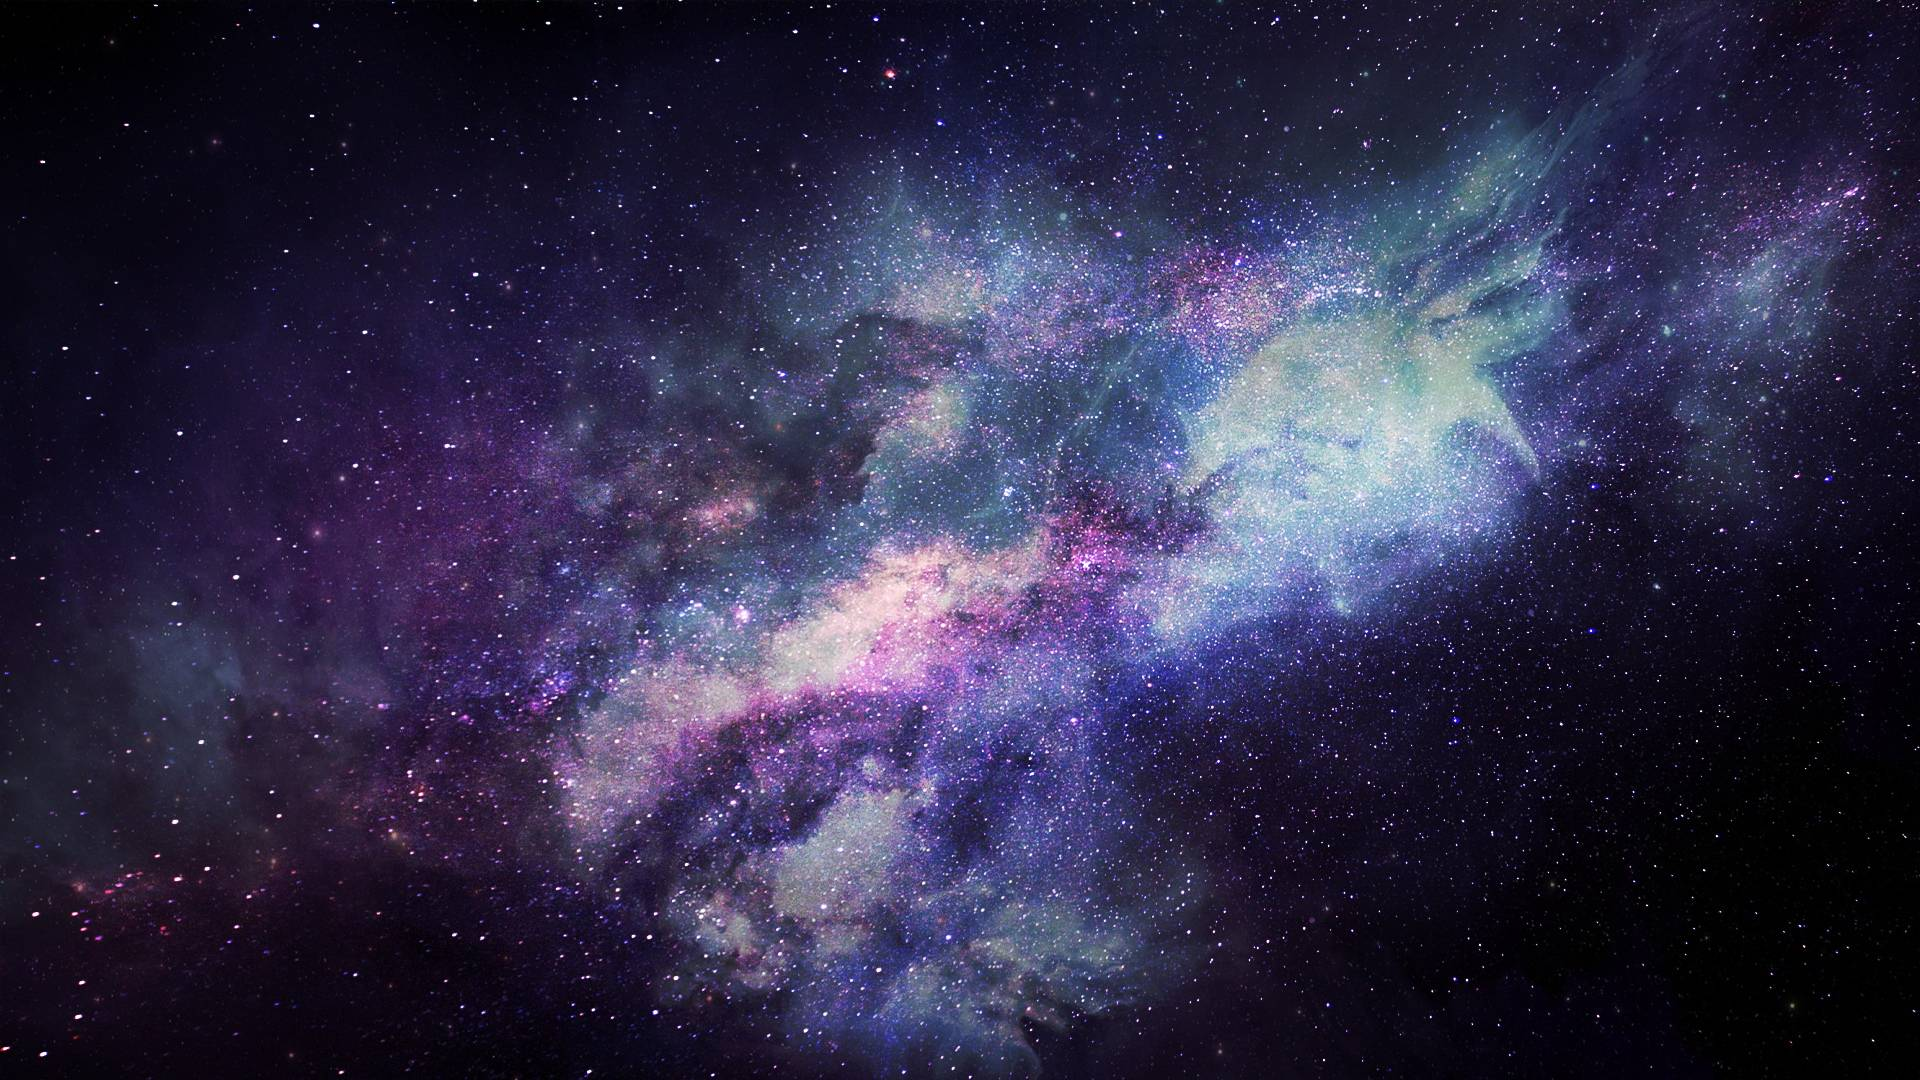 Galaxy Wallpaper 59 1920x1080